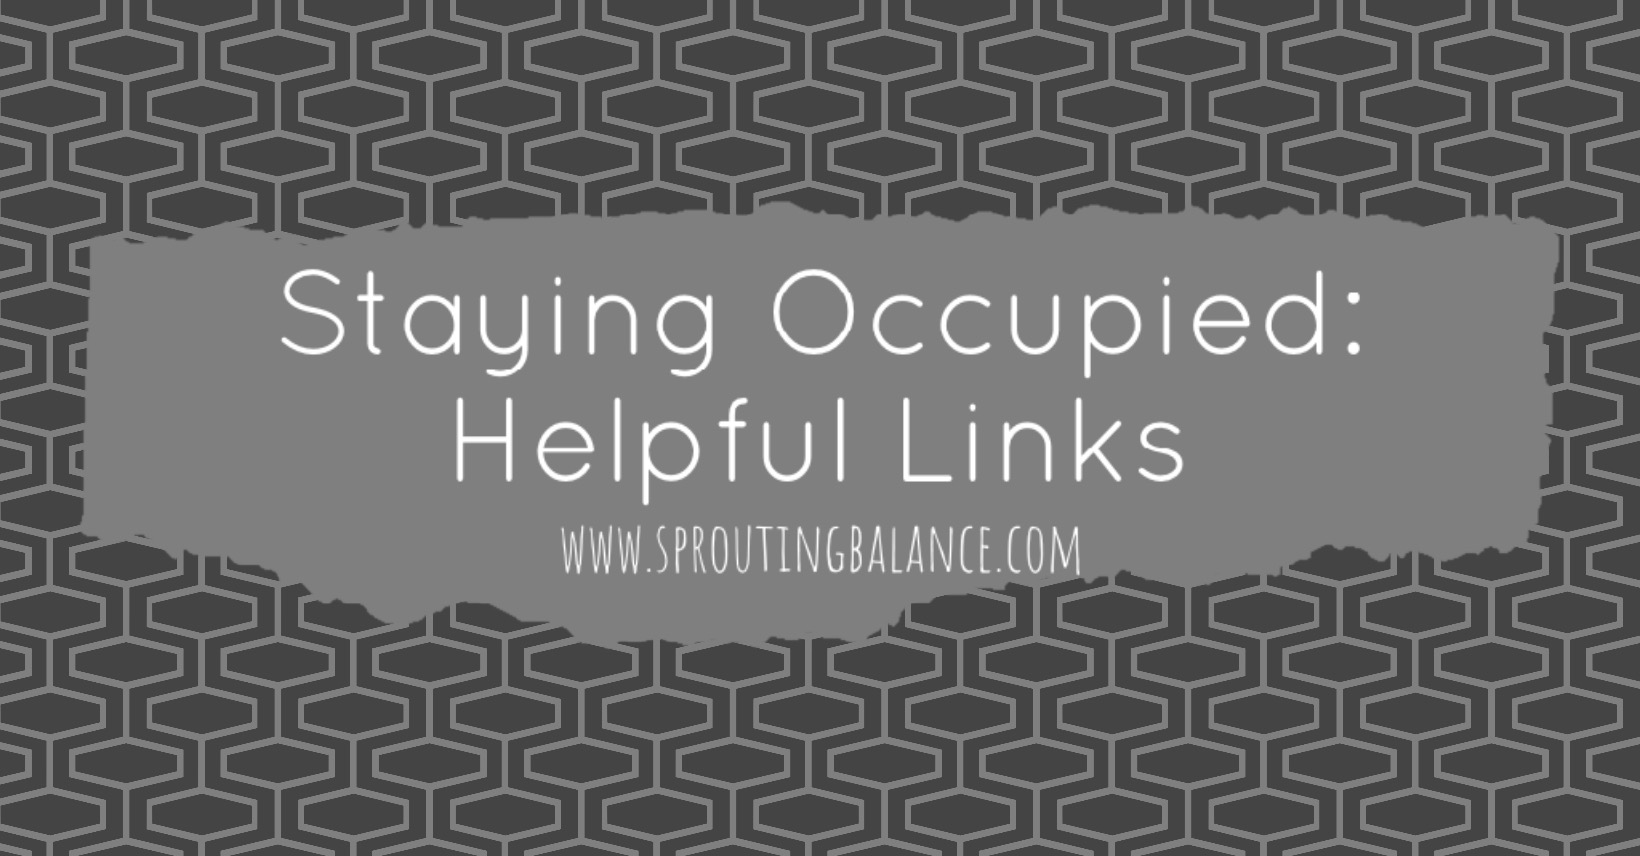 Staying Occupied: Helpful Links | www.sproutingbalance.com | #stayhome #socialdistancing #bepositive